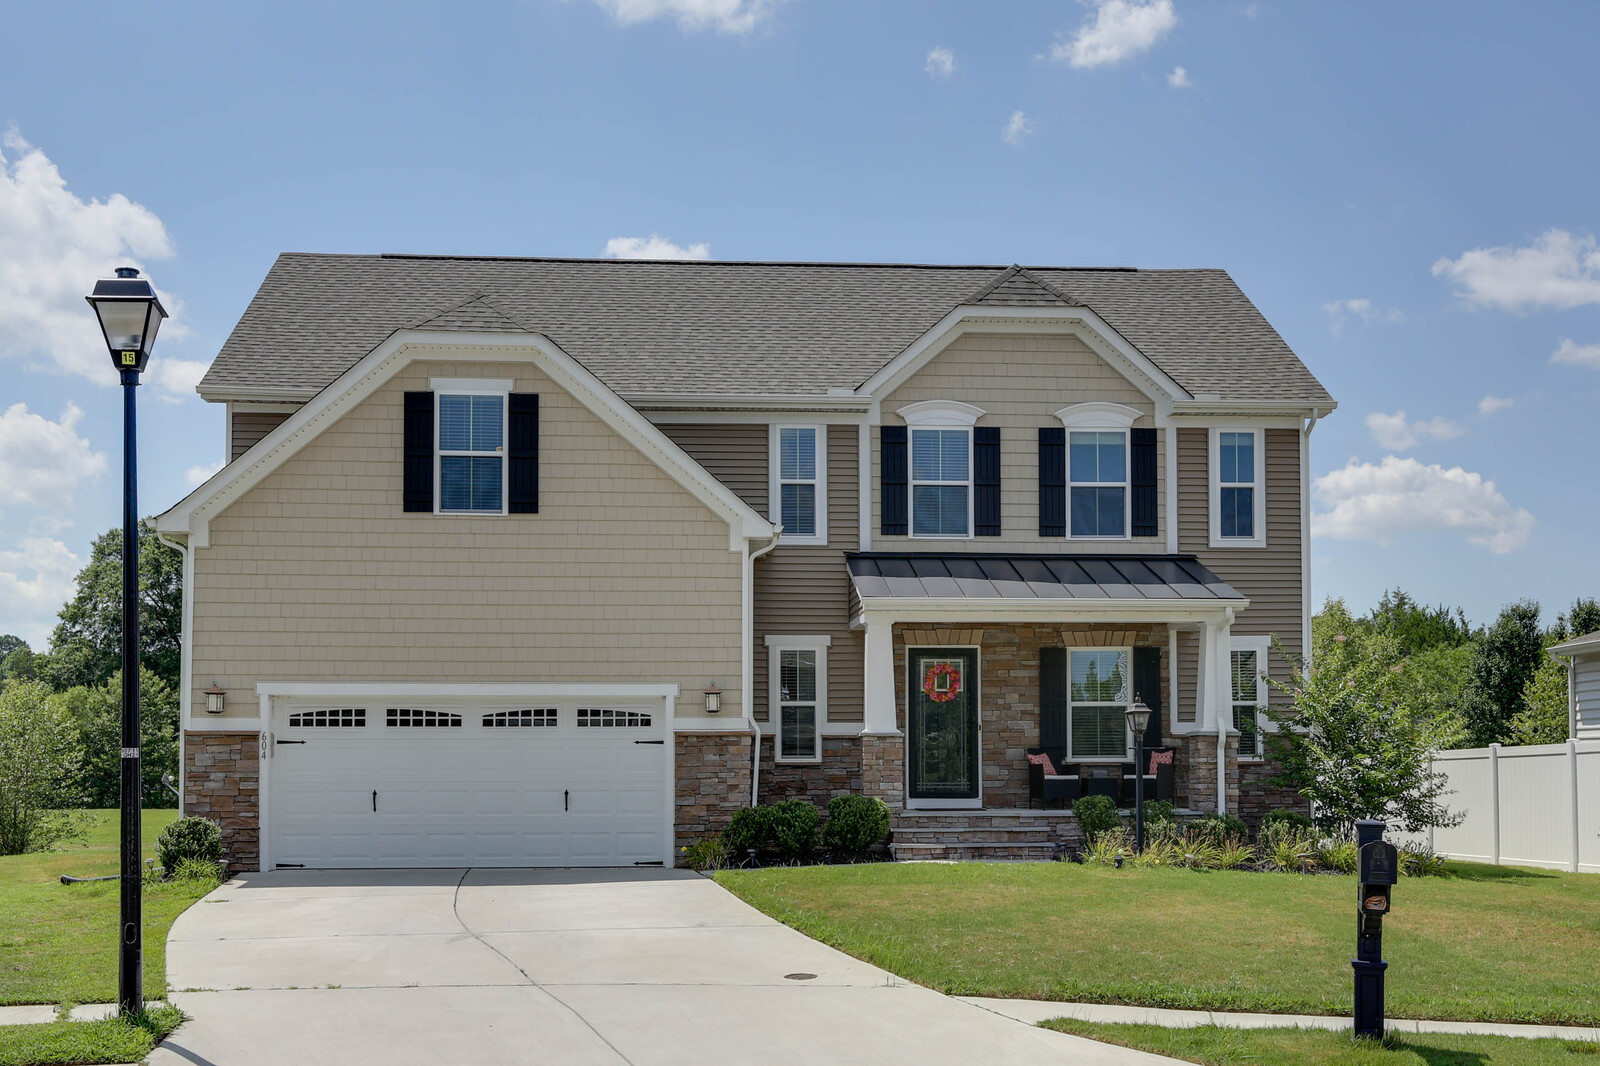 Single Family Homes for Sale at Centerville Commons 604 Rockies Ct, Chesapeake, Virginia 23320 United States